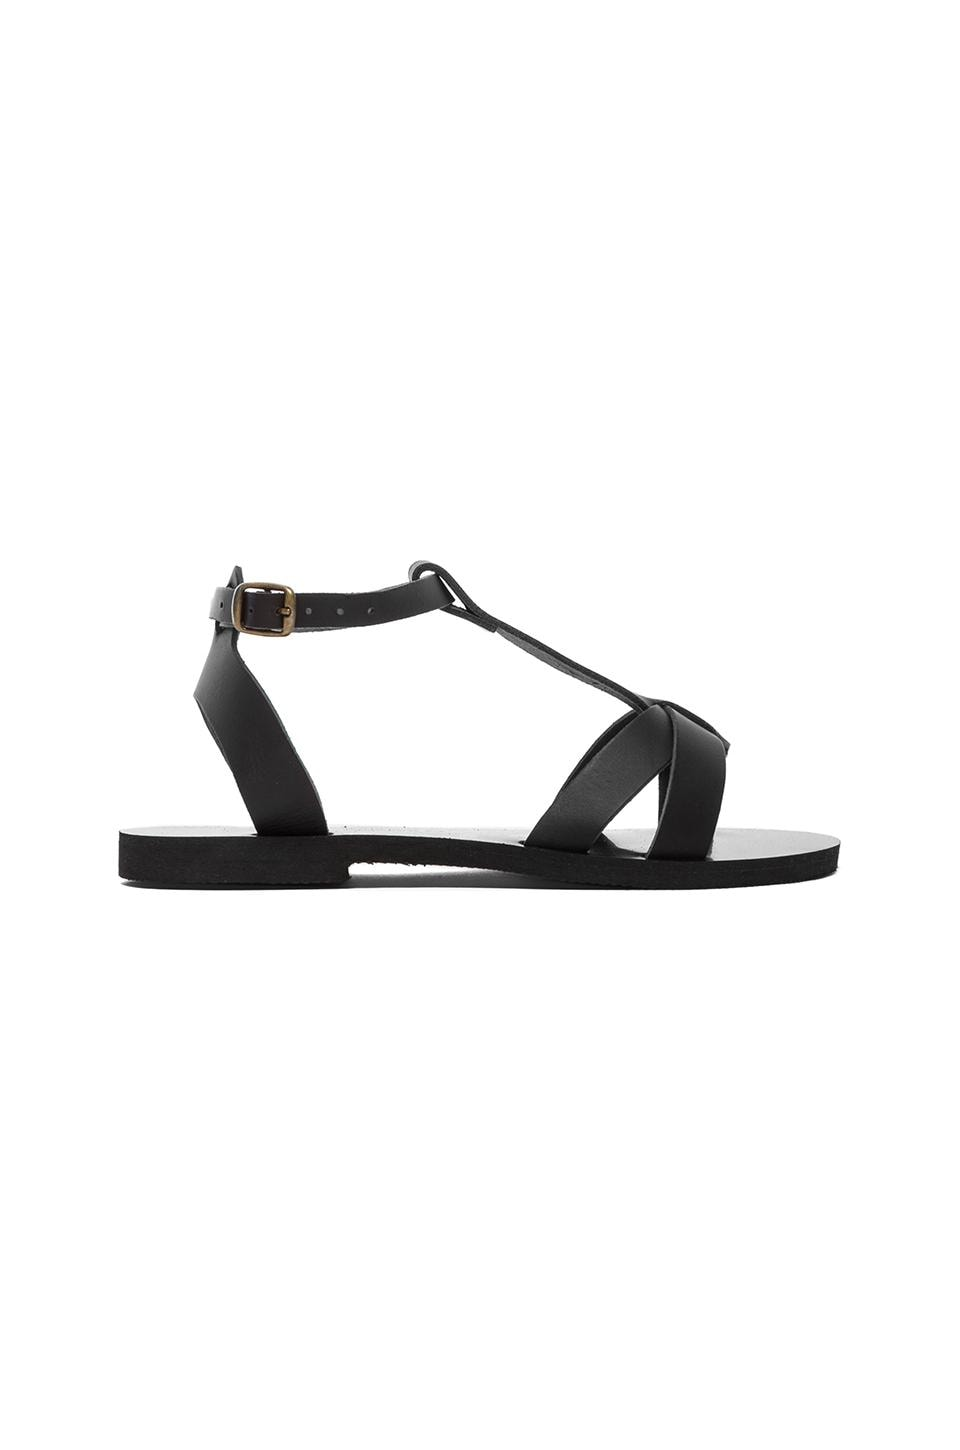 isapera Iris Sandal in Black